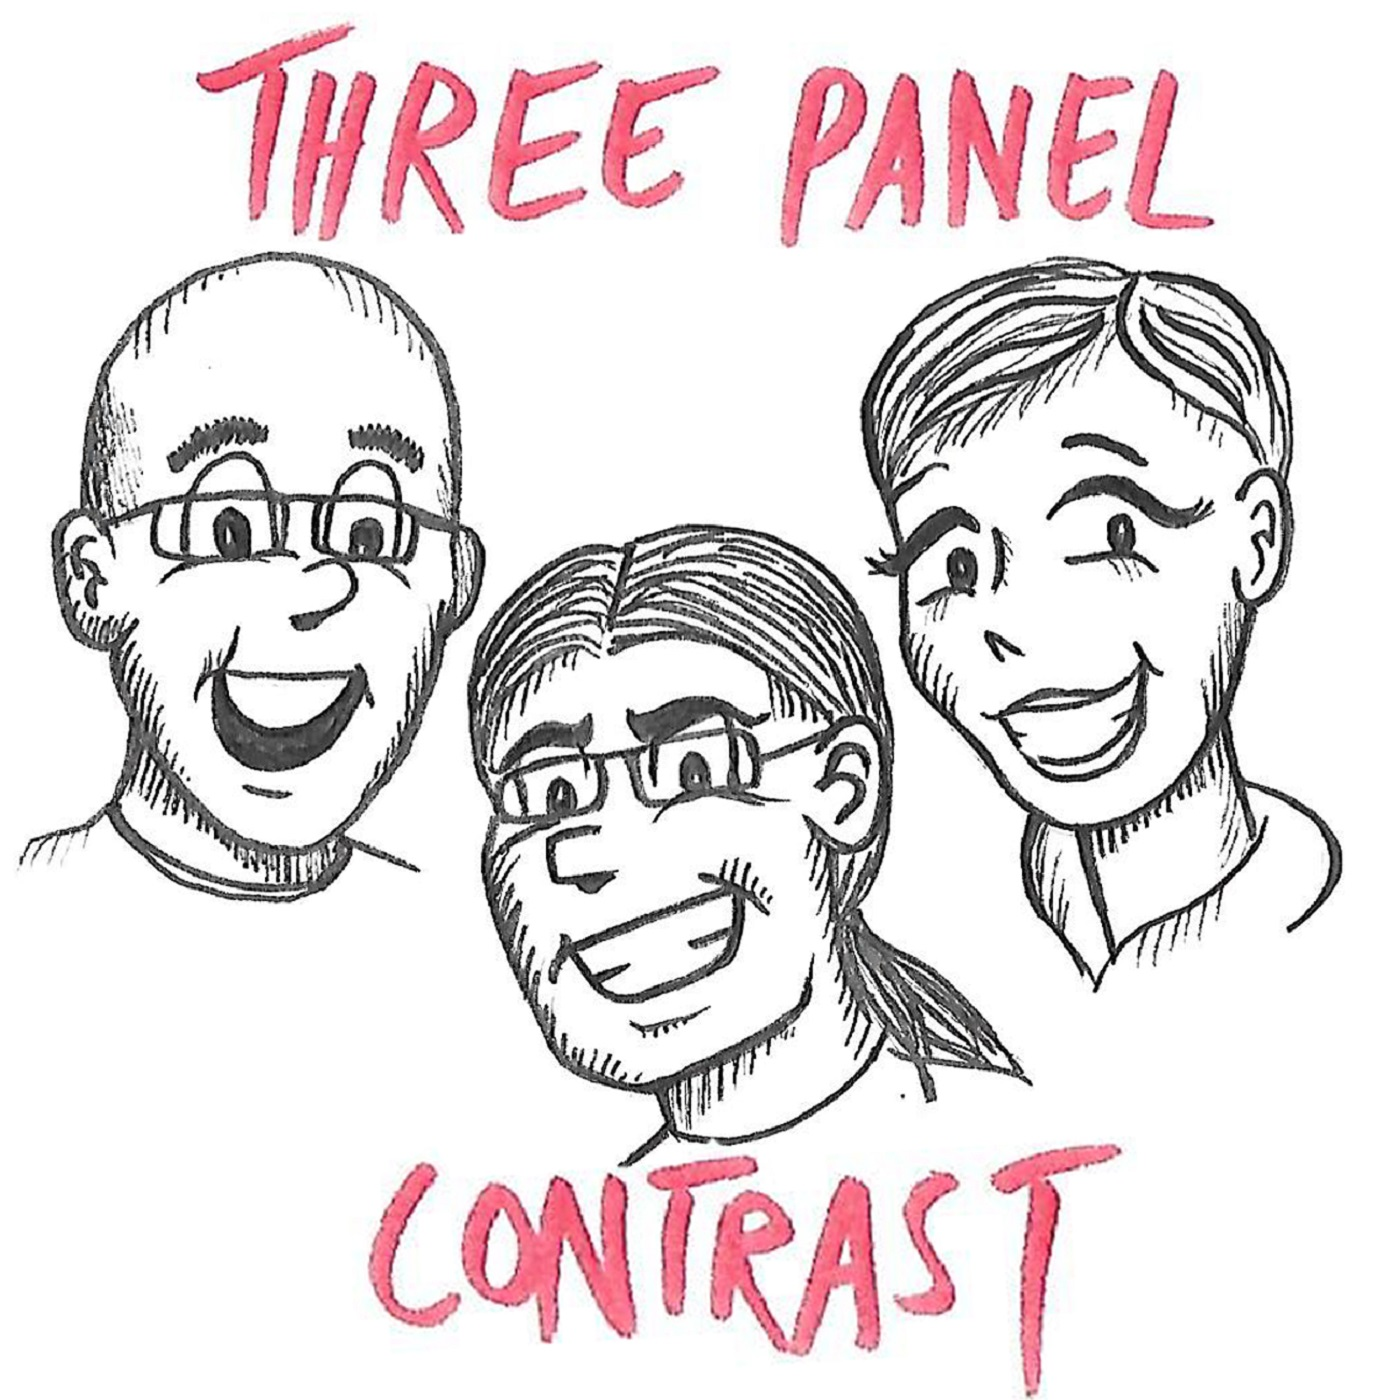 Three Panel Contrast